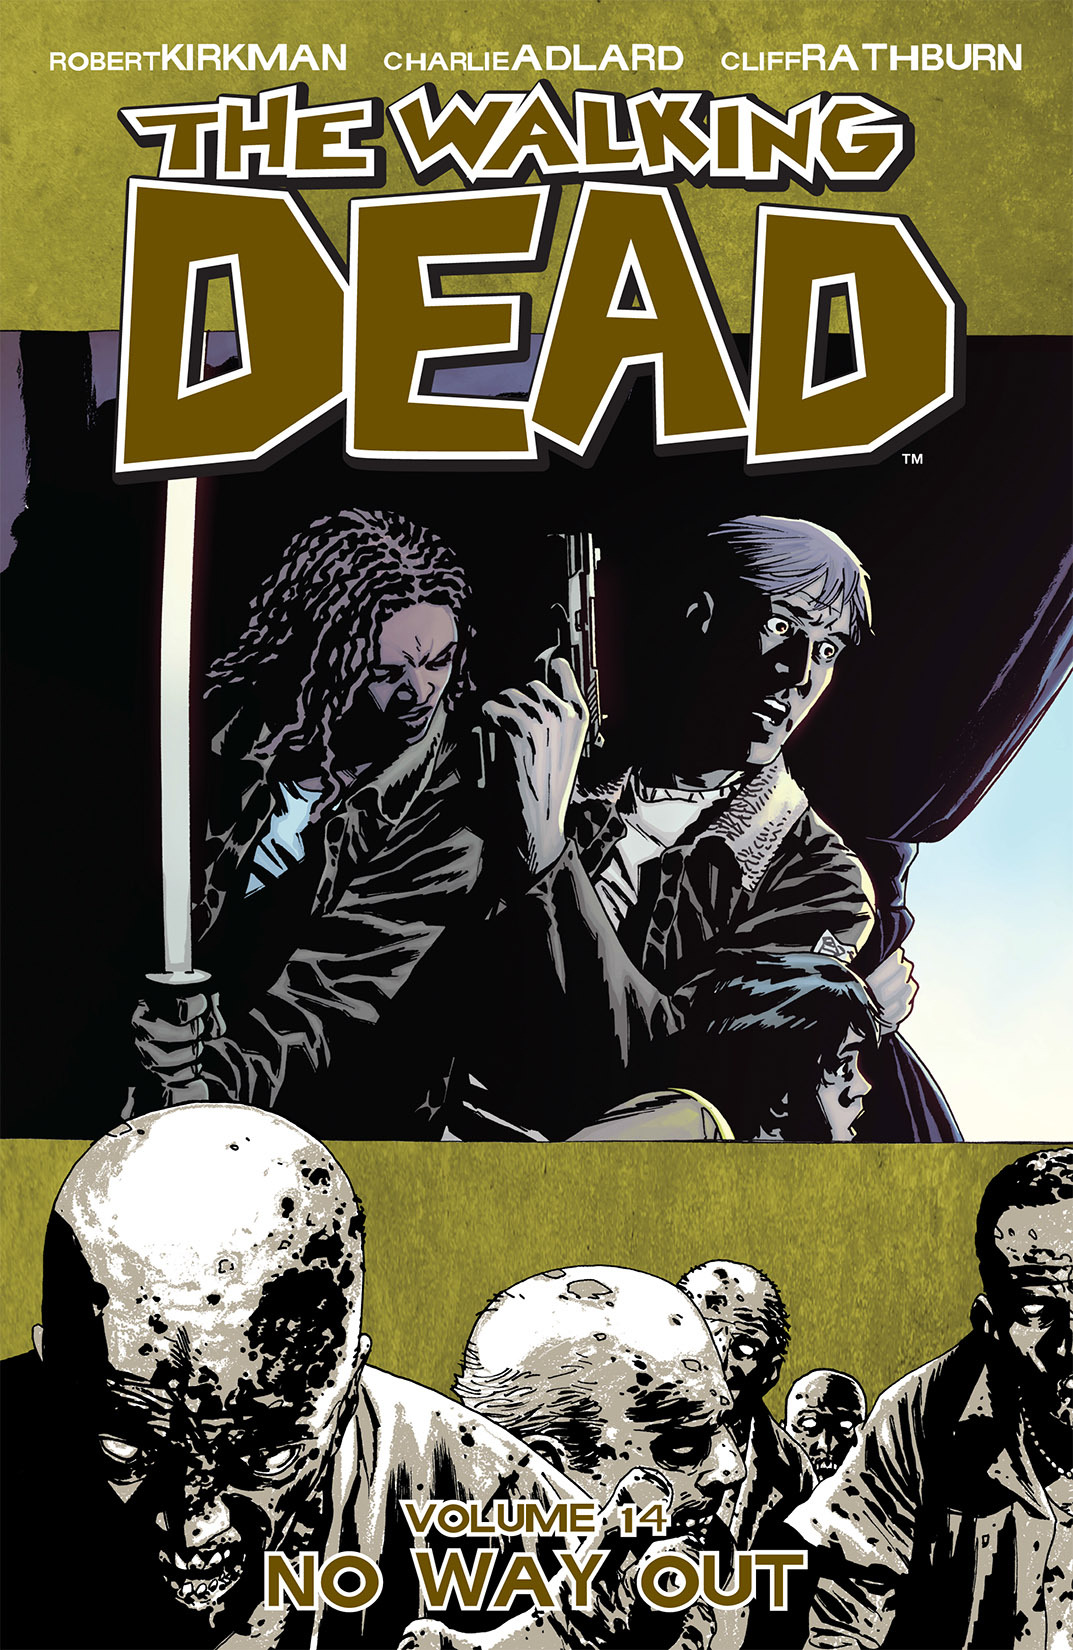 The Walking Dead Volume 14 - No Way Out